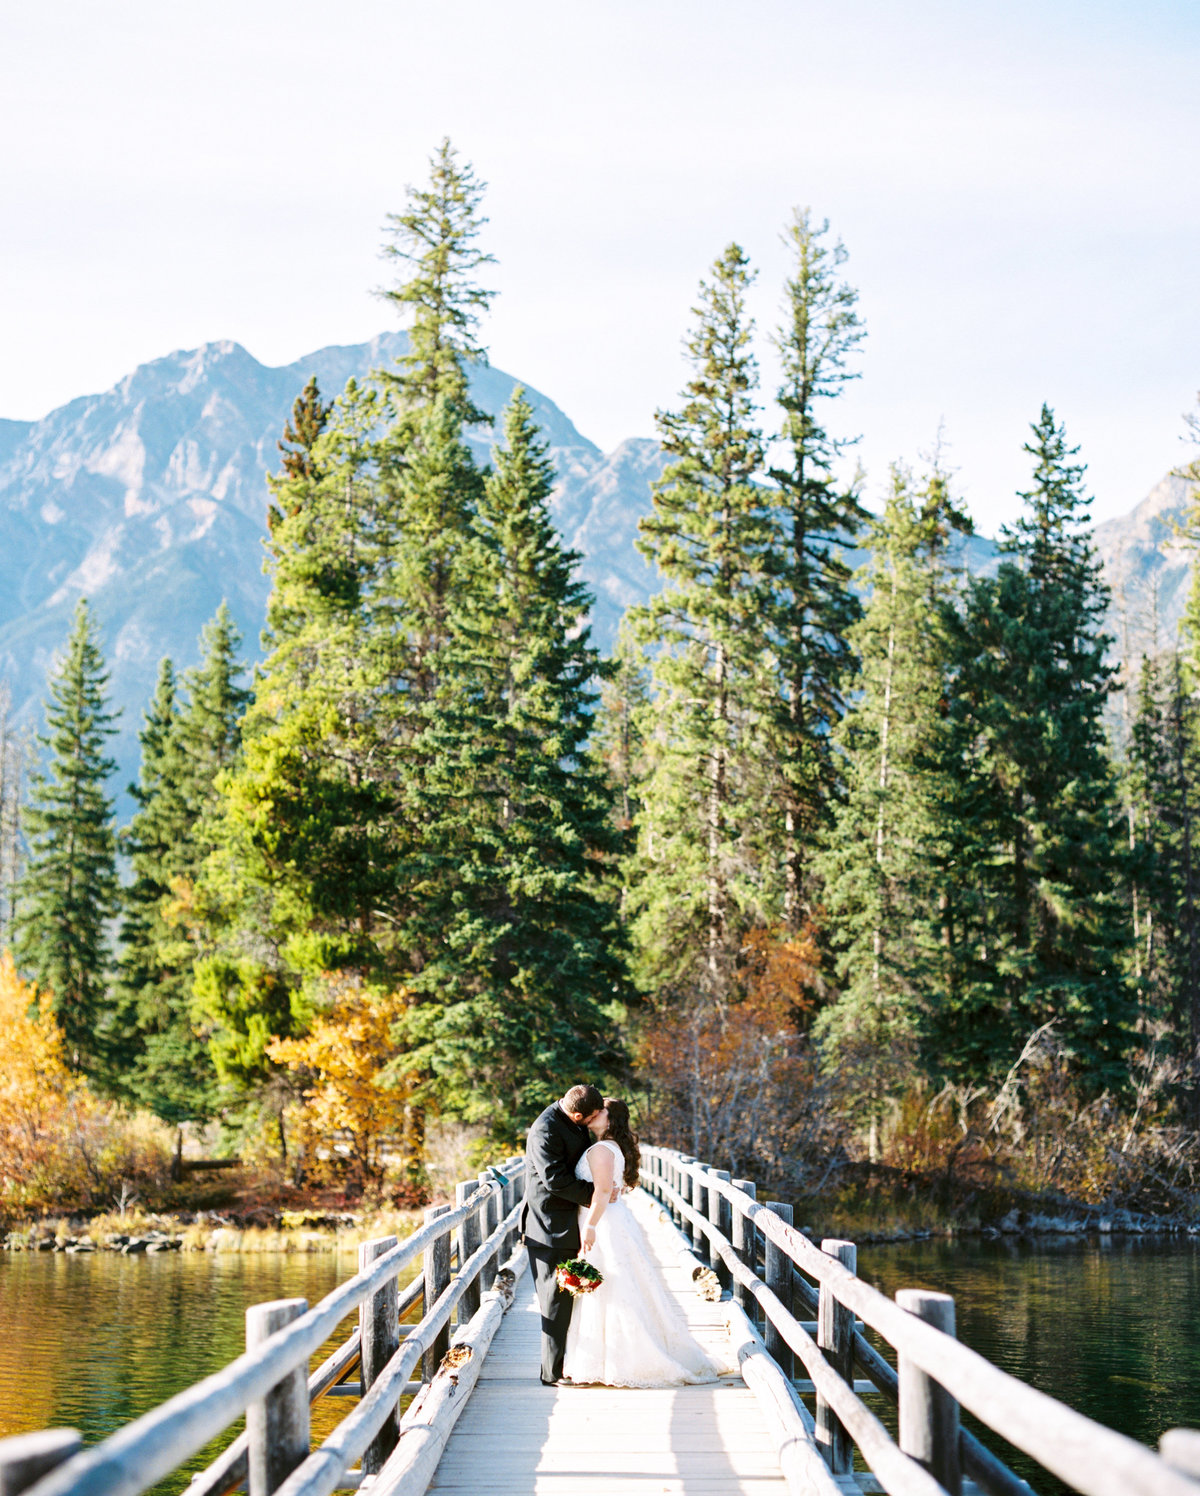 Pyramid Lake Island is a beautiful place for wedding photos located in Jasper Alberta